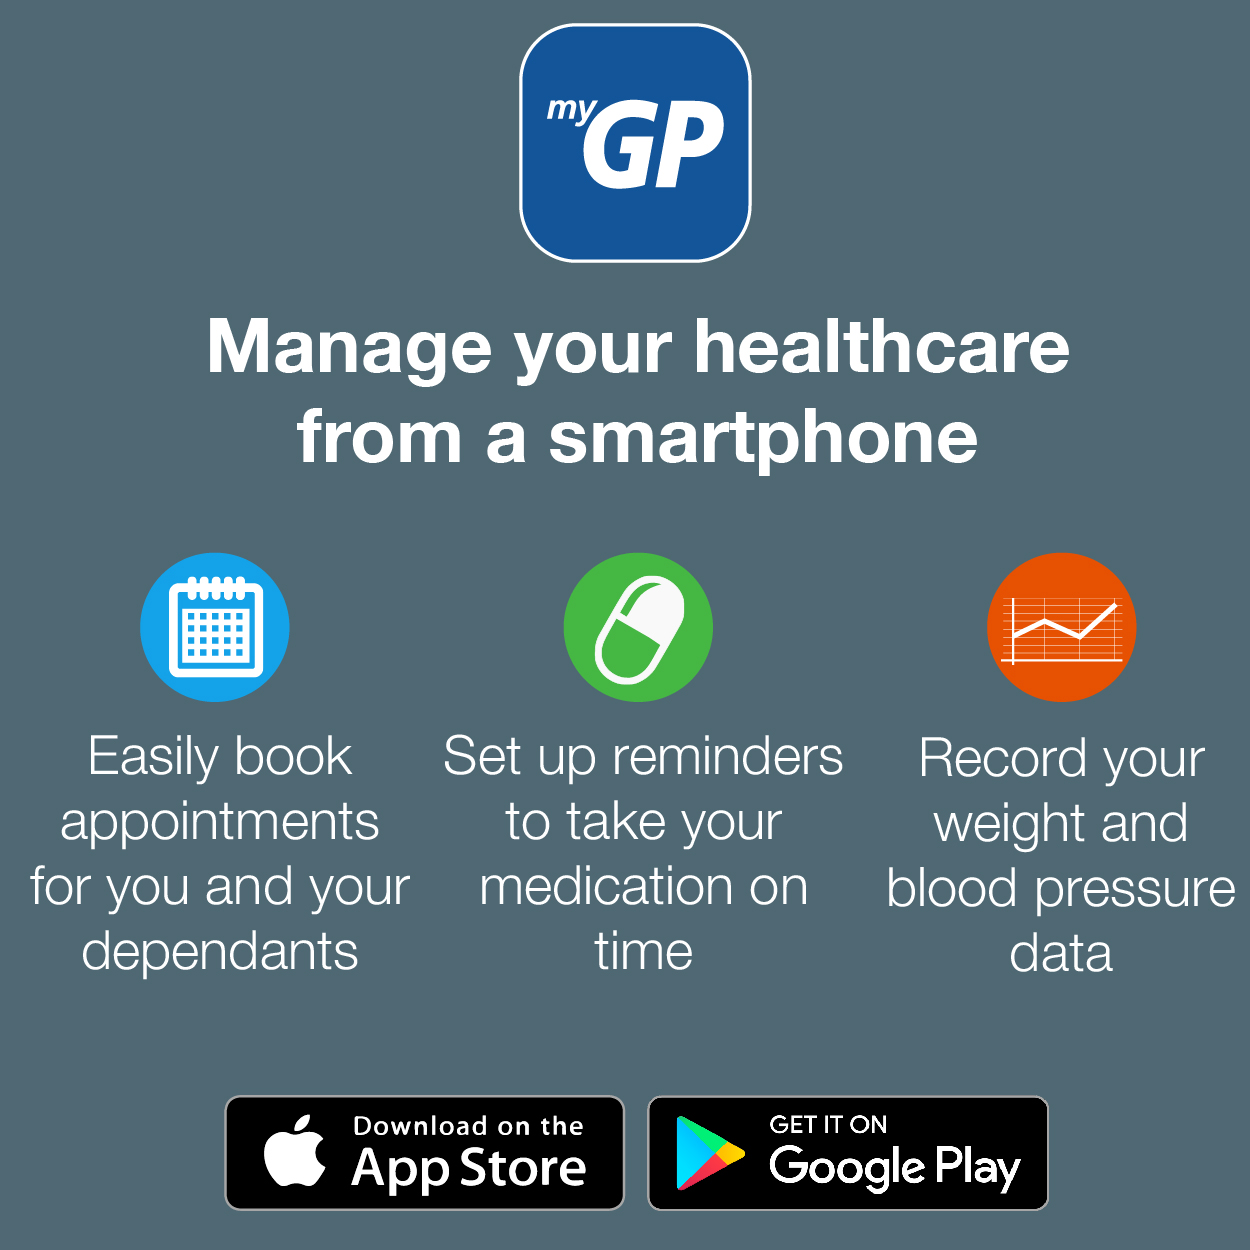 Manage your healthcare from a smartphone.  Easily book appointments for you and your dependants.  Set up reminders to take your medication on time.  Record your weight and blood pressure data